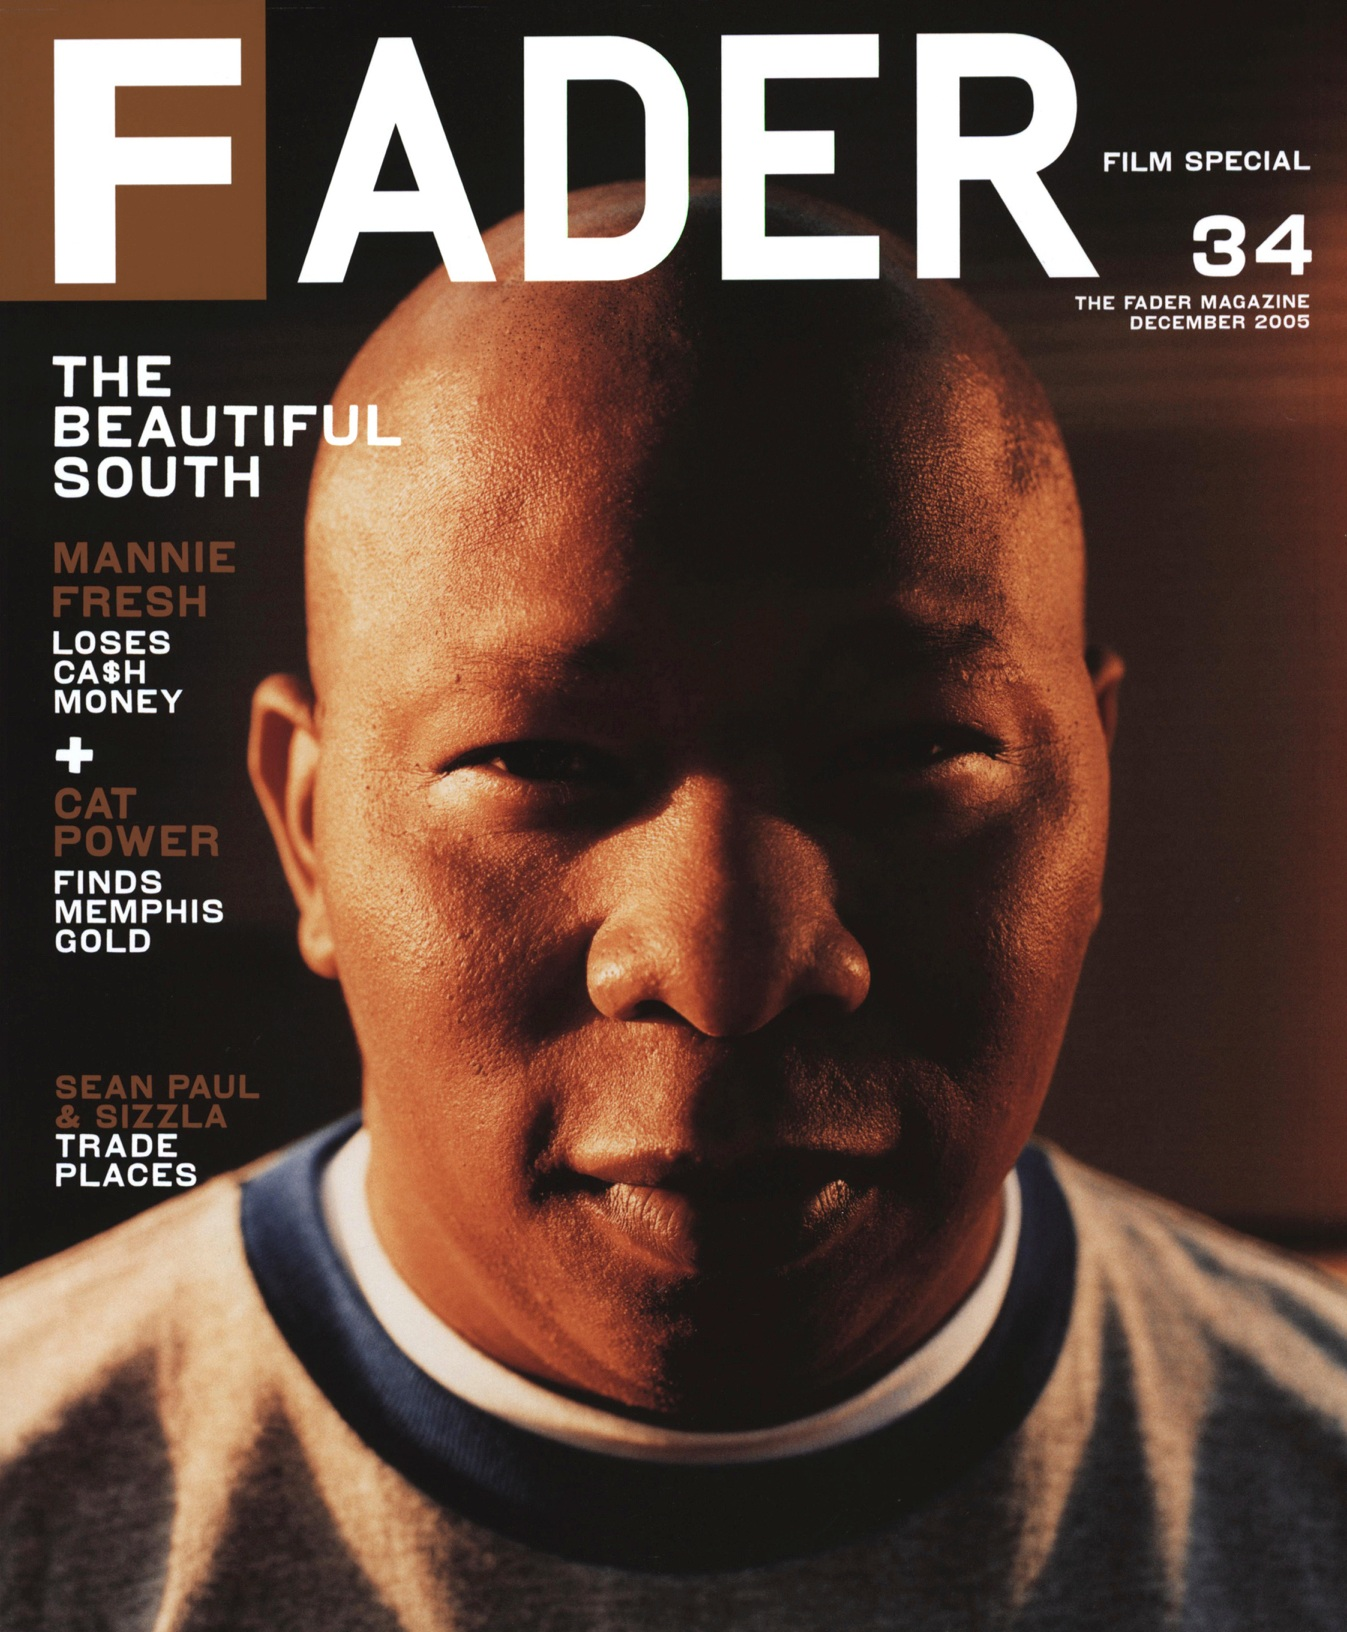 In Mannie Fresh's 2005 Cover Story, The Super-Producer Finds Freedom After Cash Money